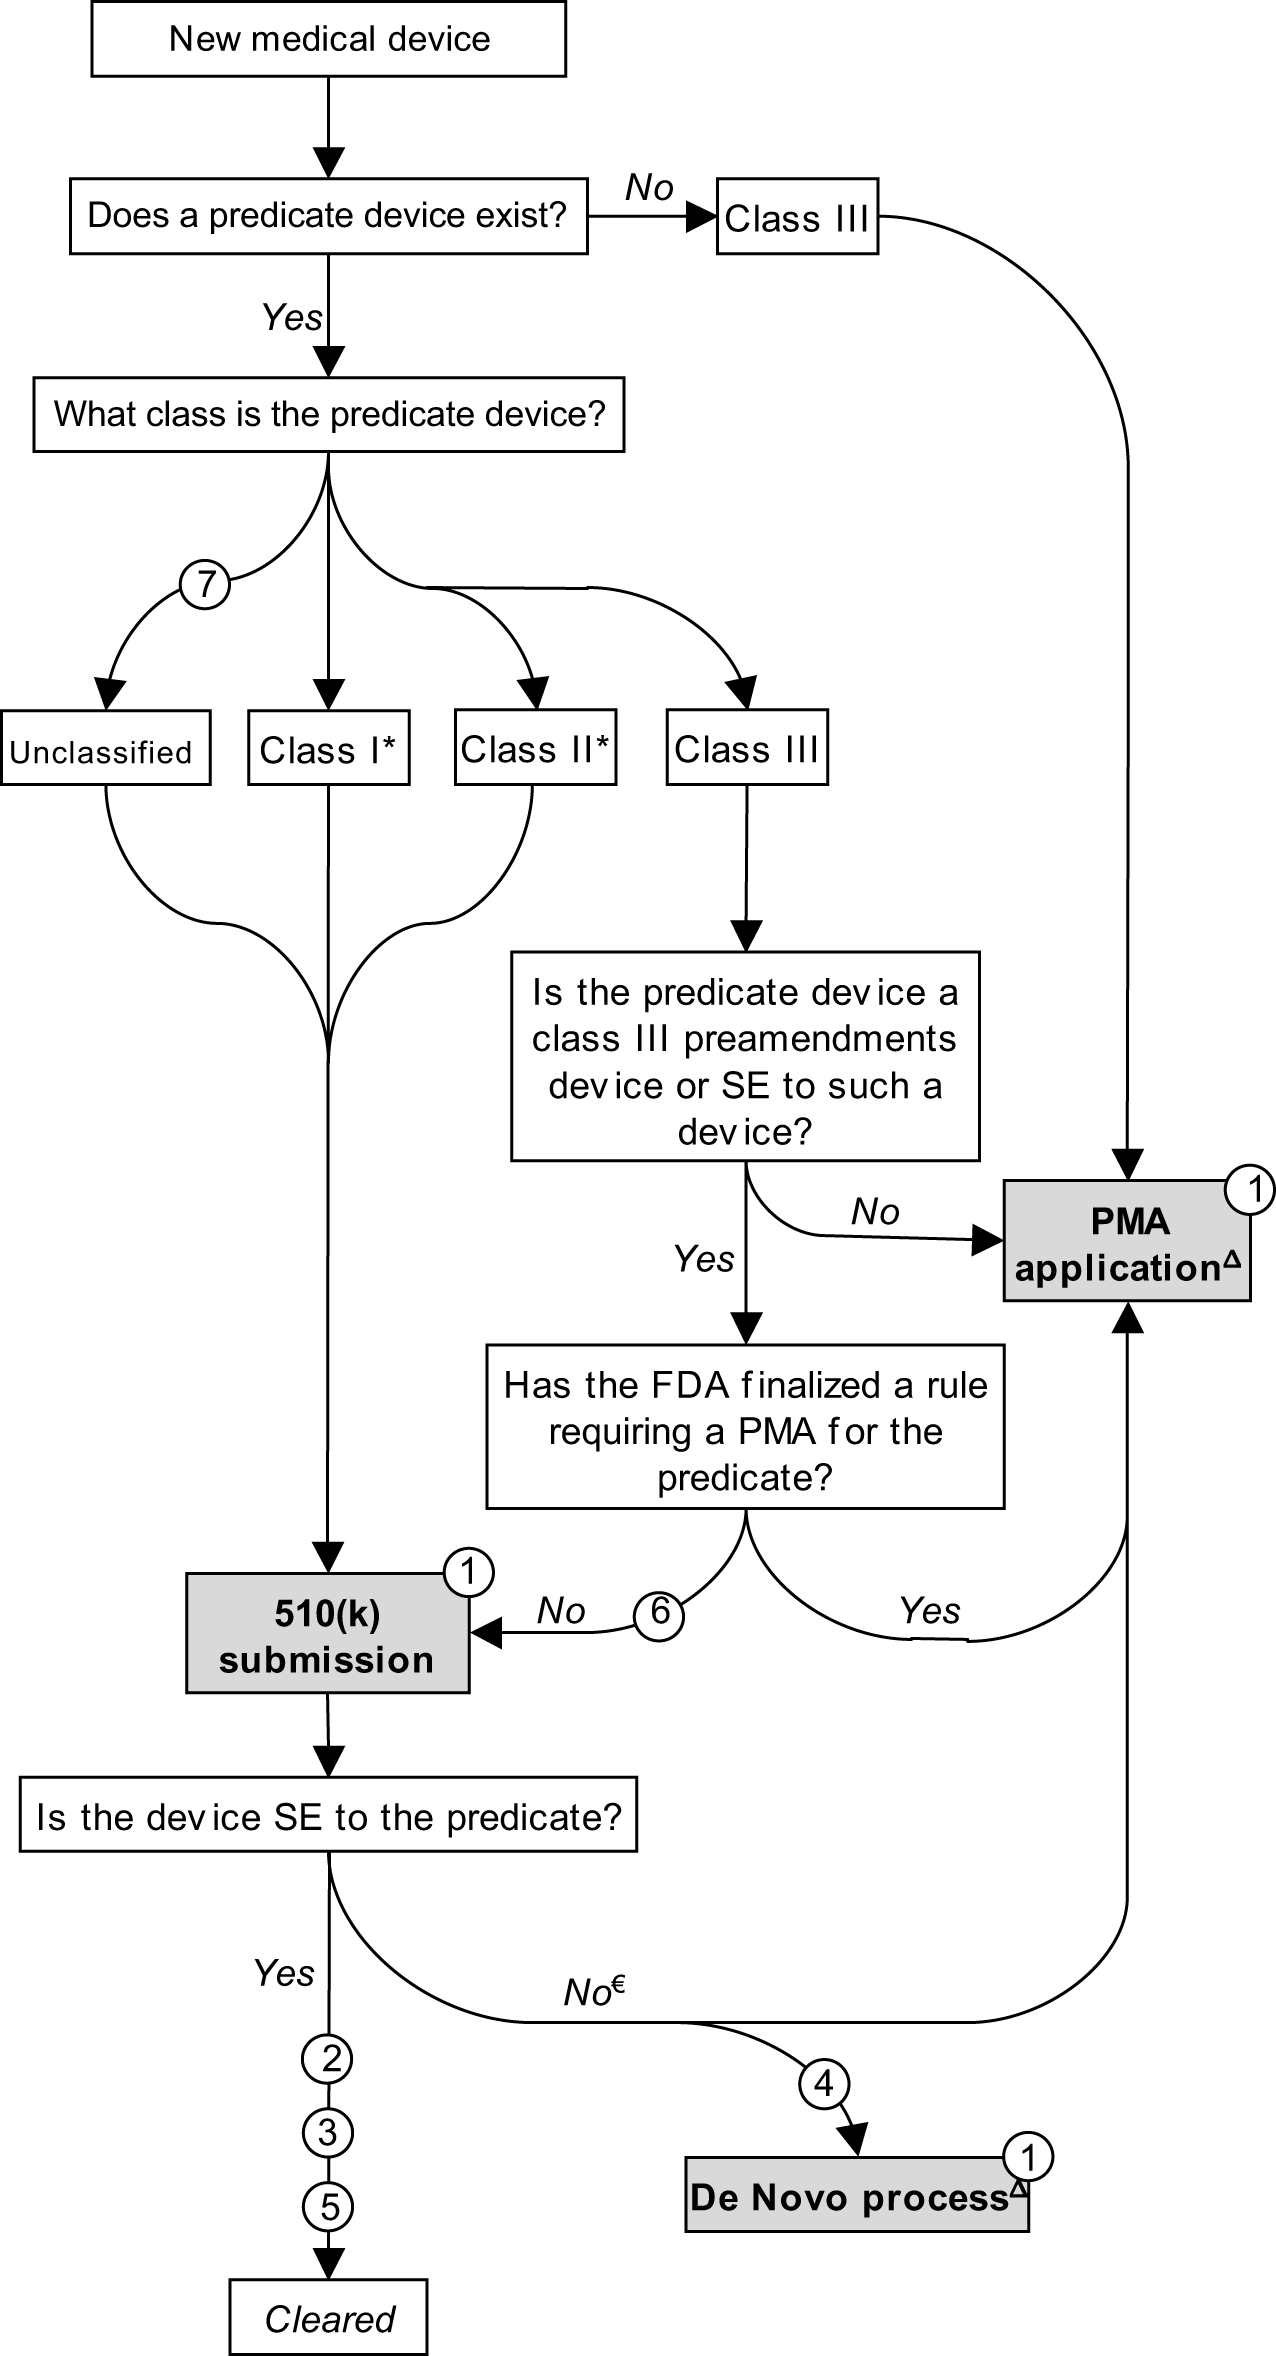 Schematic representation of medical device premarket review mechanisms.